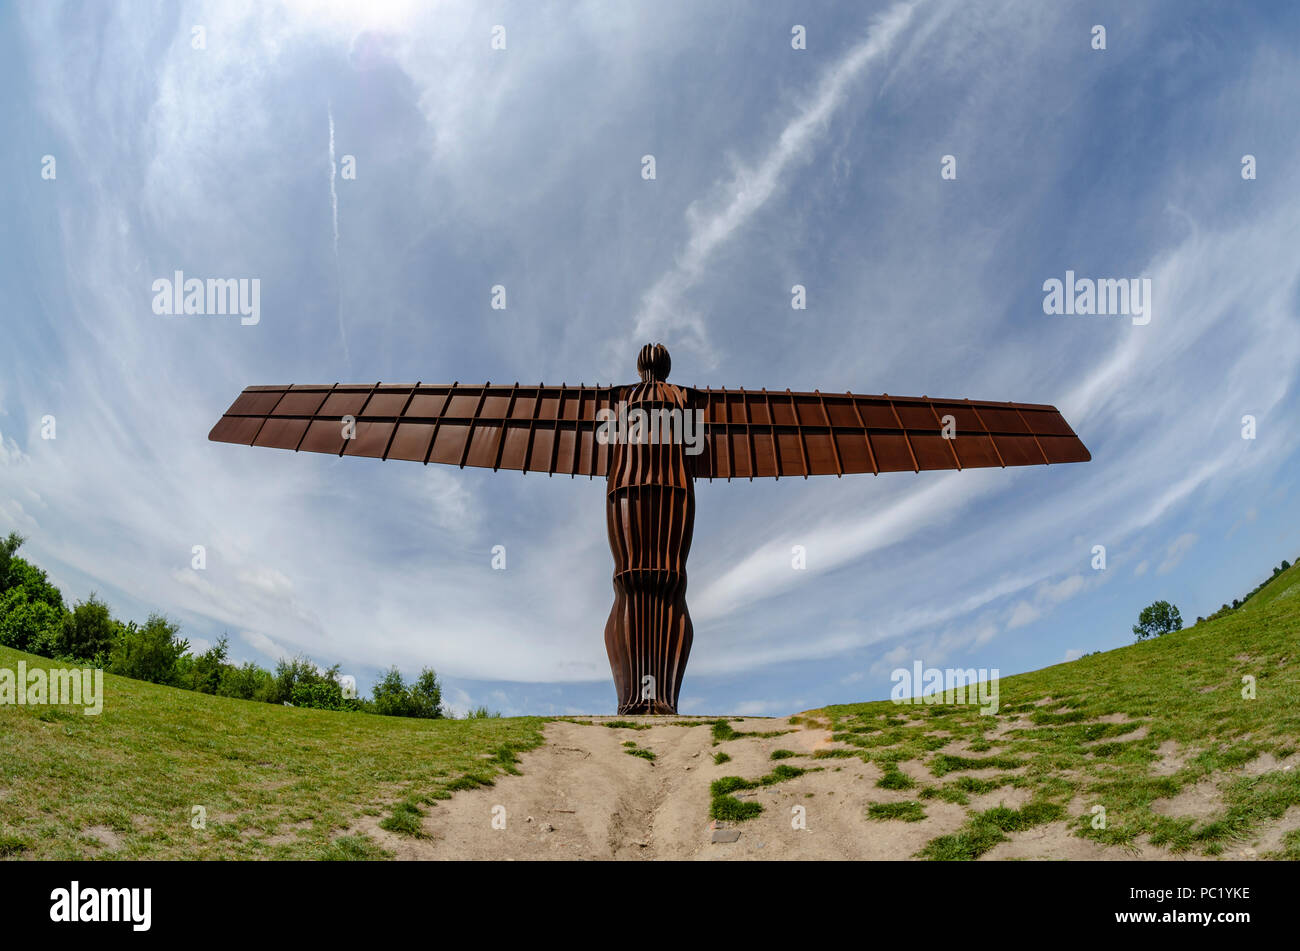 The Angel Of The North Statue, UK - Stock Image